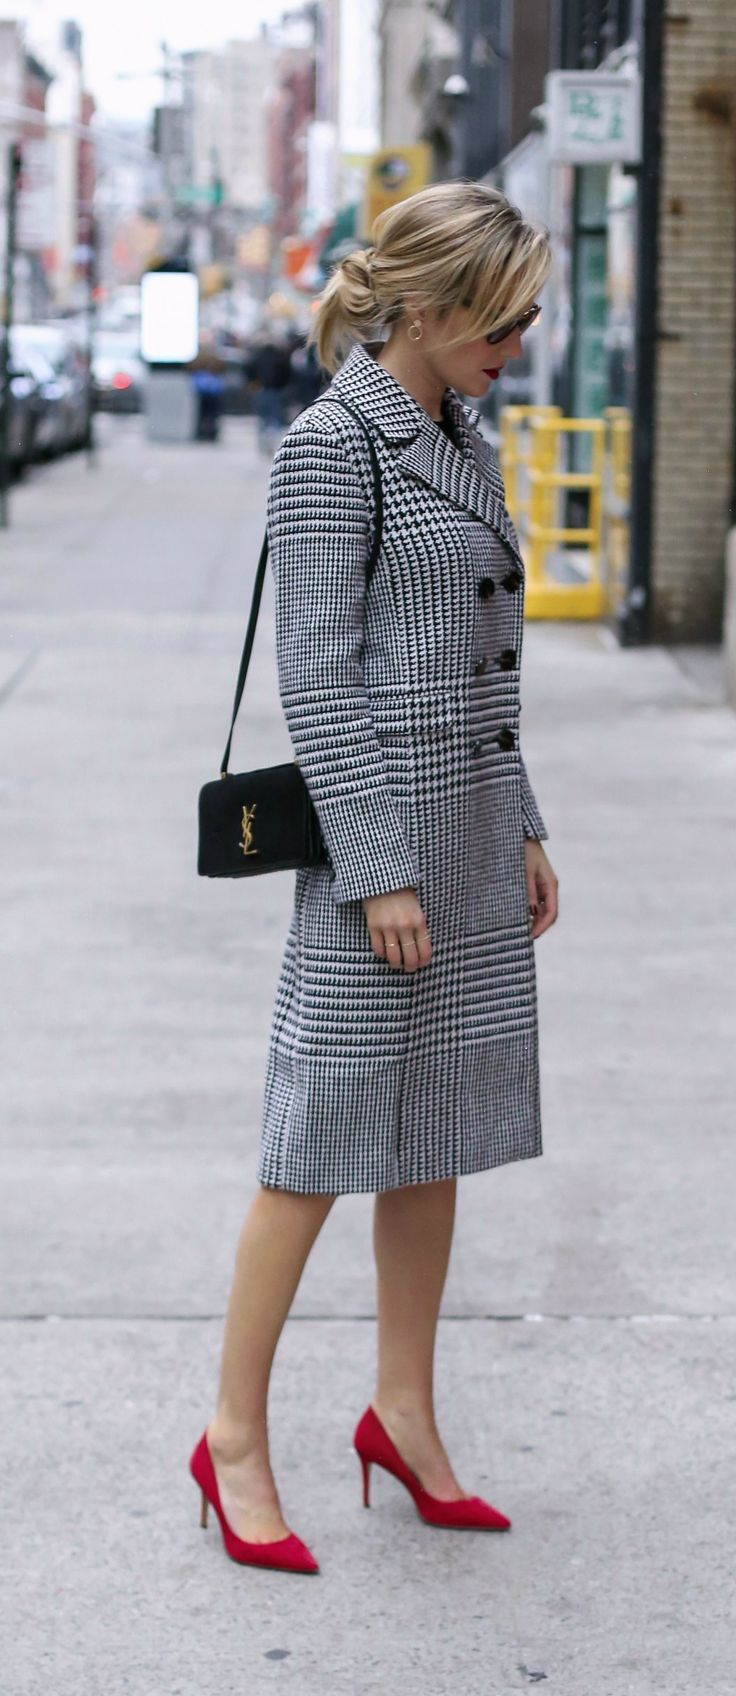 black and white glen plaid houndstooth double-breasted classic long coat, red suede pointy toe pumps